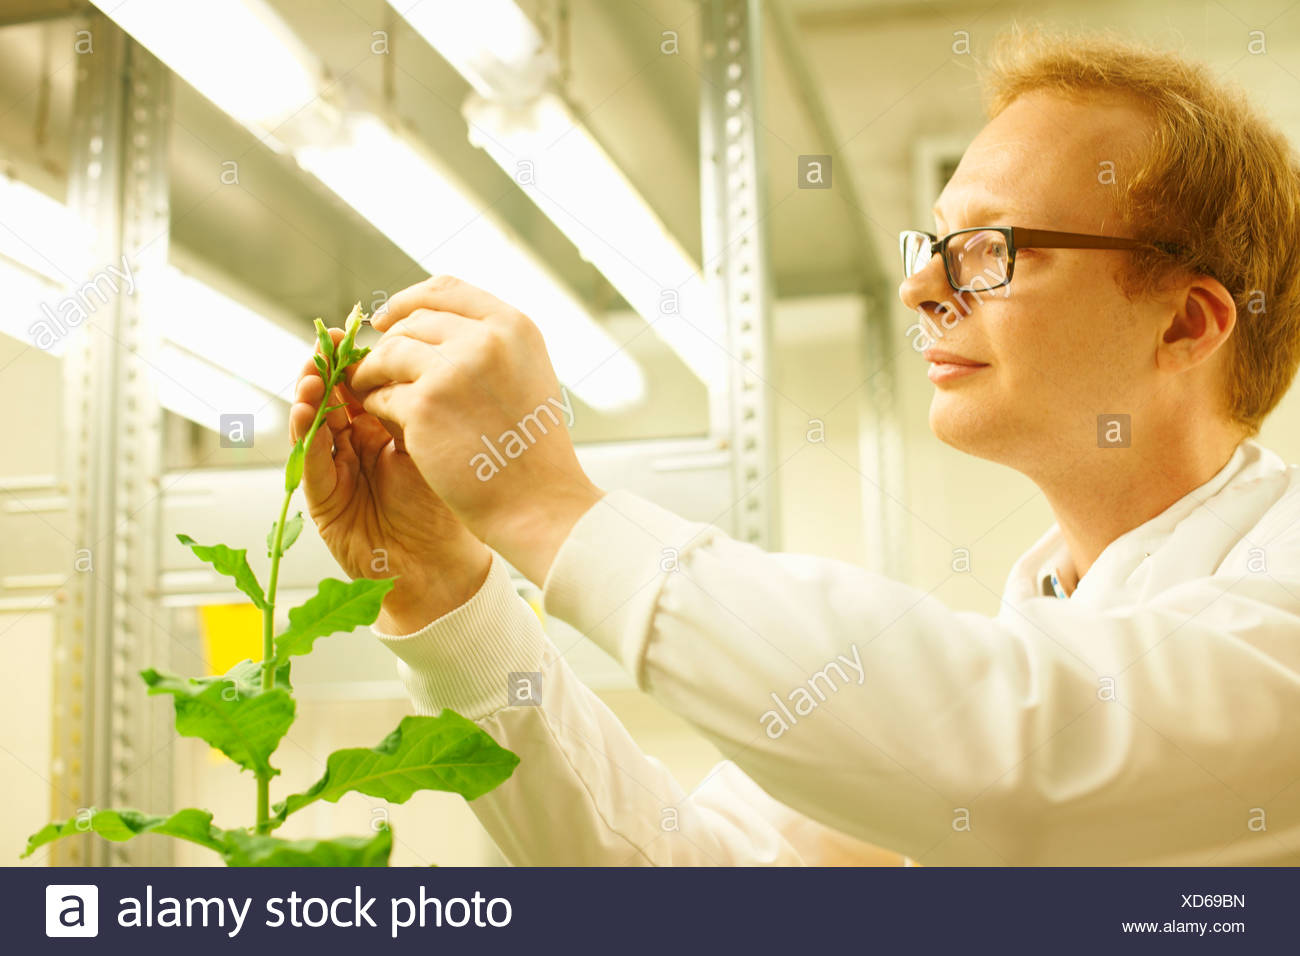 Male scientist picking sample from plant - Stock Image